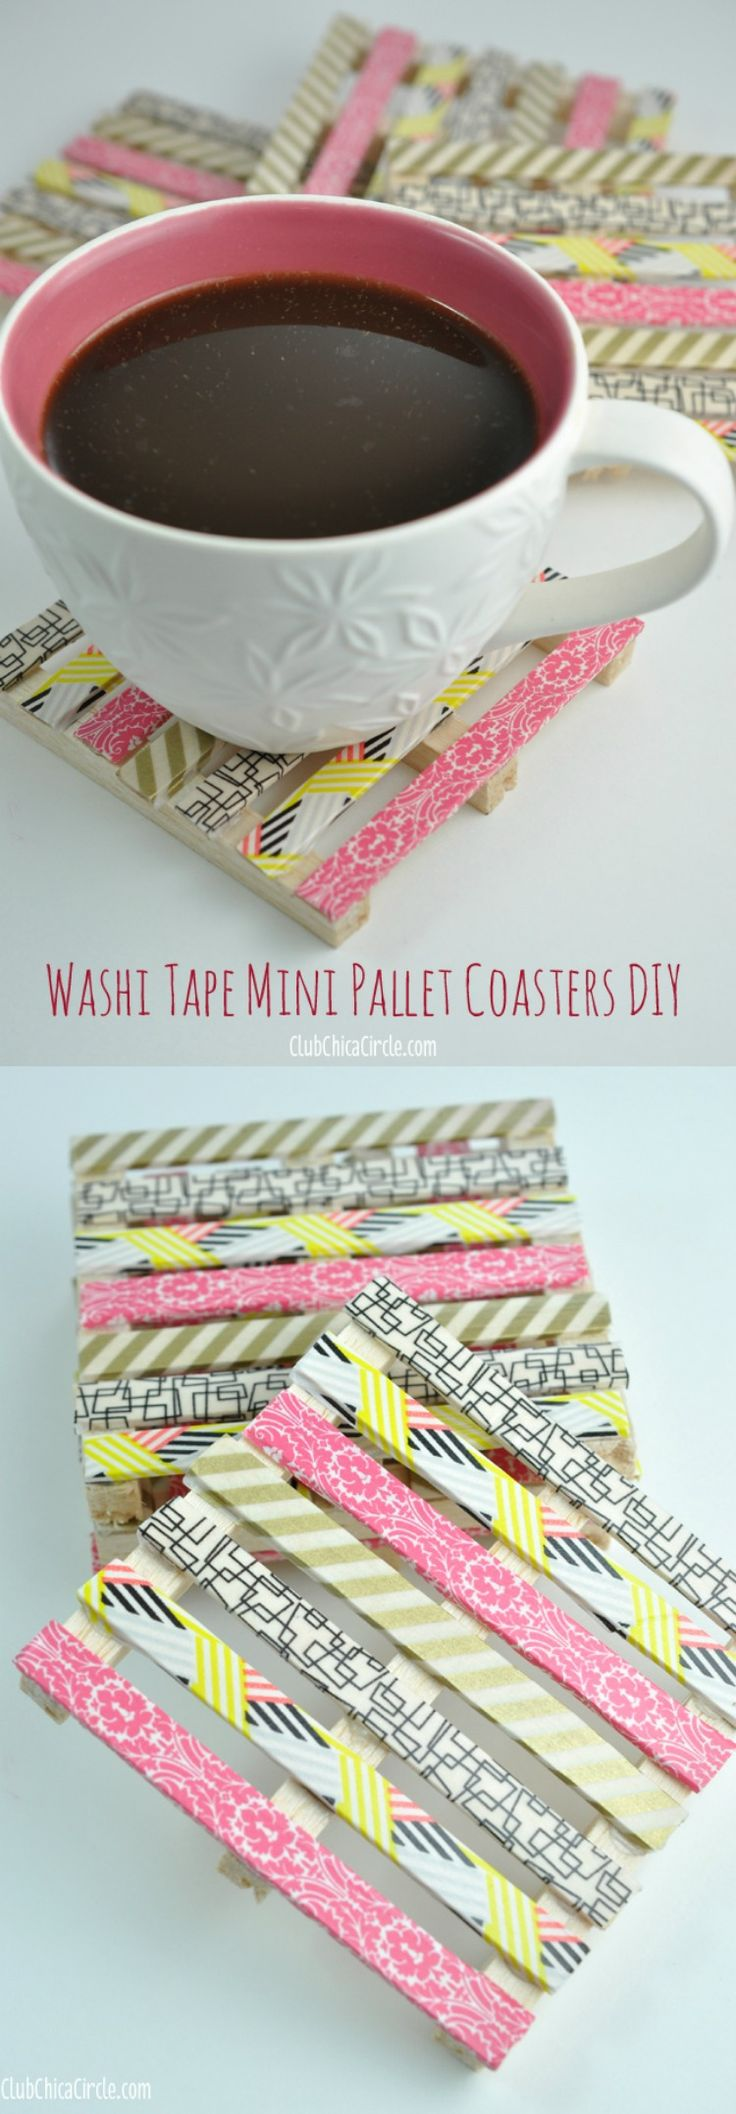 Pauline shows you how to create mini wood pallet DIY coasters using popsicle sticks, small wood piece and washi tape. So cute and easy!: